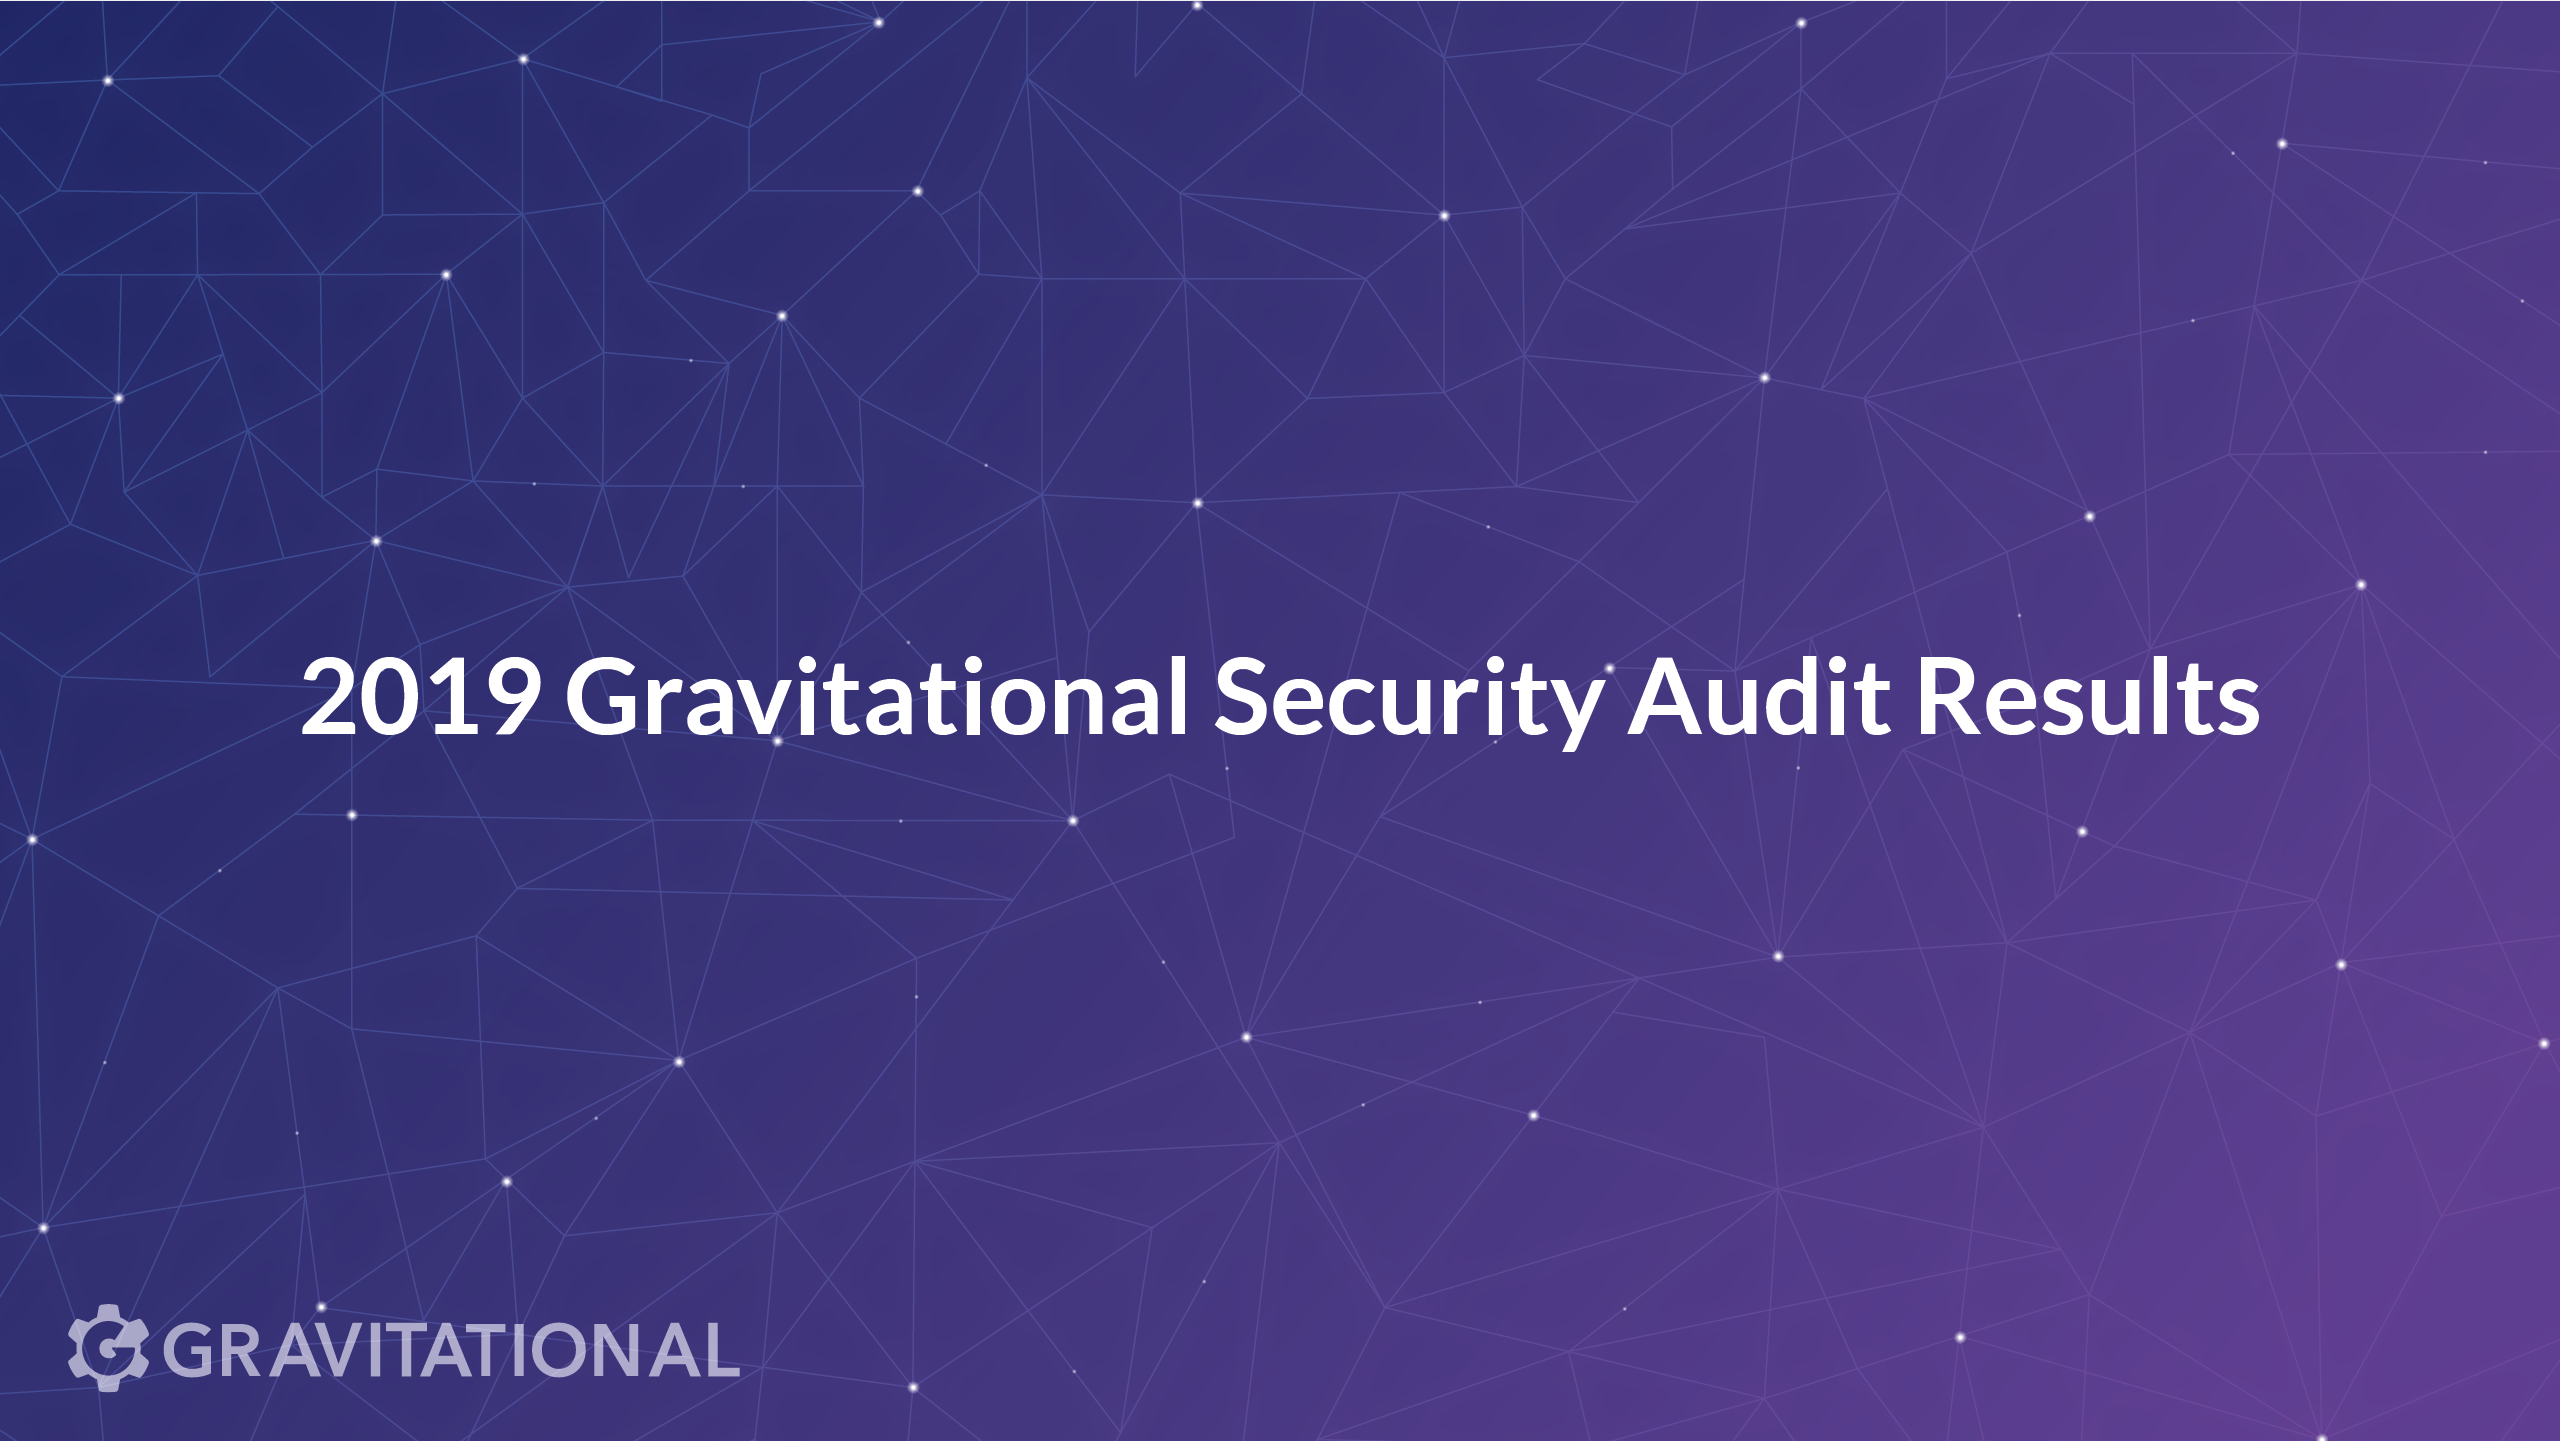 2019 Gravitational Security Audit Results